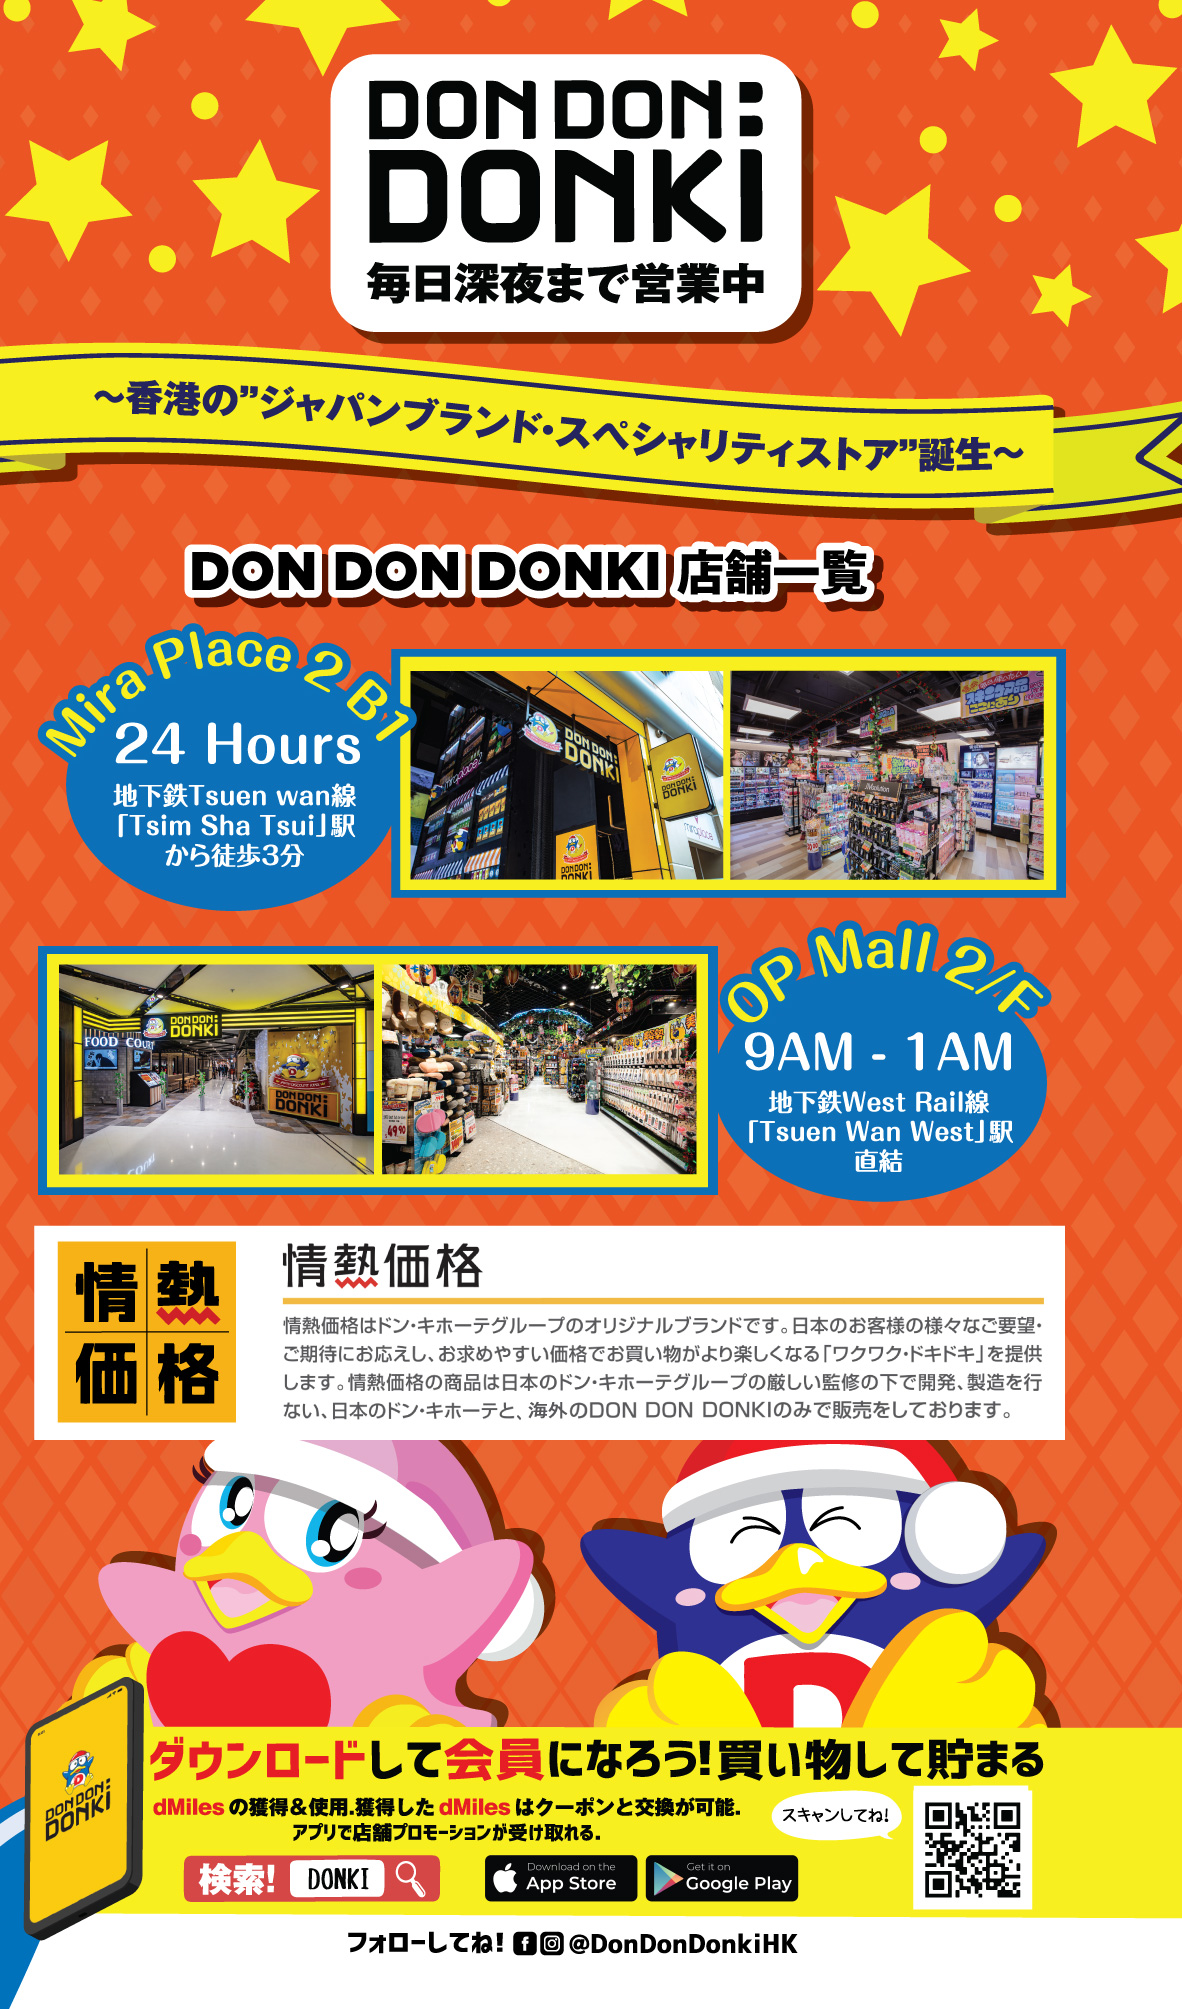 ドン・ドン・ドンキ(MIRA店) Don Don Donki MIRA Store Pan Pacific Retail Management (Hong Kong) Co. Ltd.